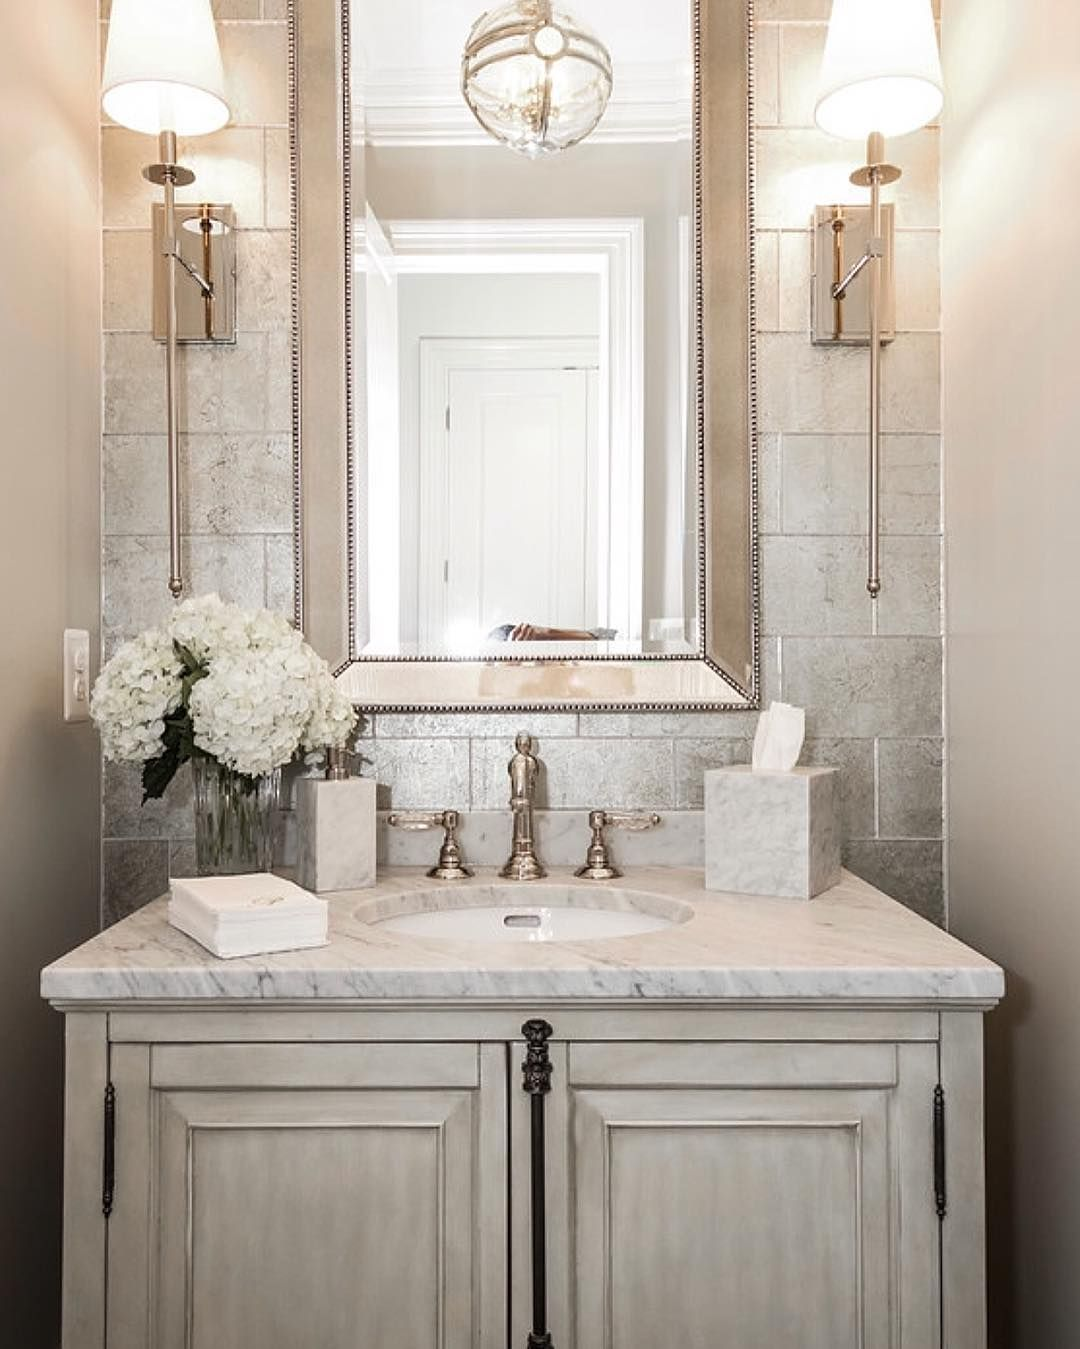 Half Bathroom Remodel, Half Bathroom Decor, Small Bathroom Decorating,  Downstairs Bathroom, Bathroom Ideas, Powder Room Lighting, Powder Room Decor,  ...